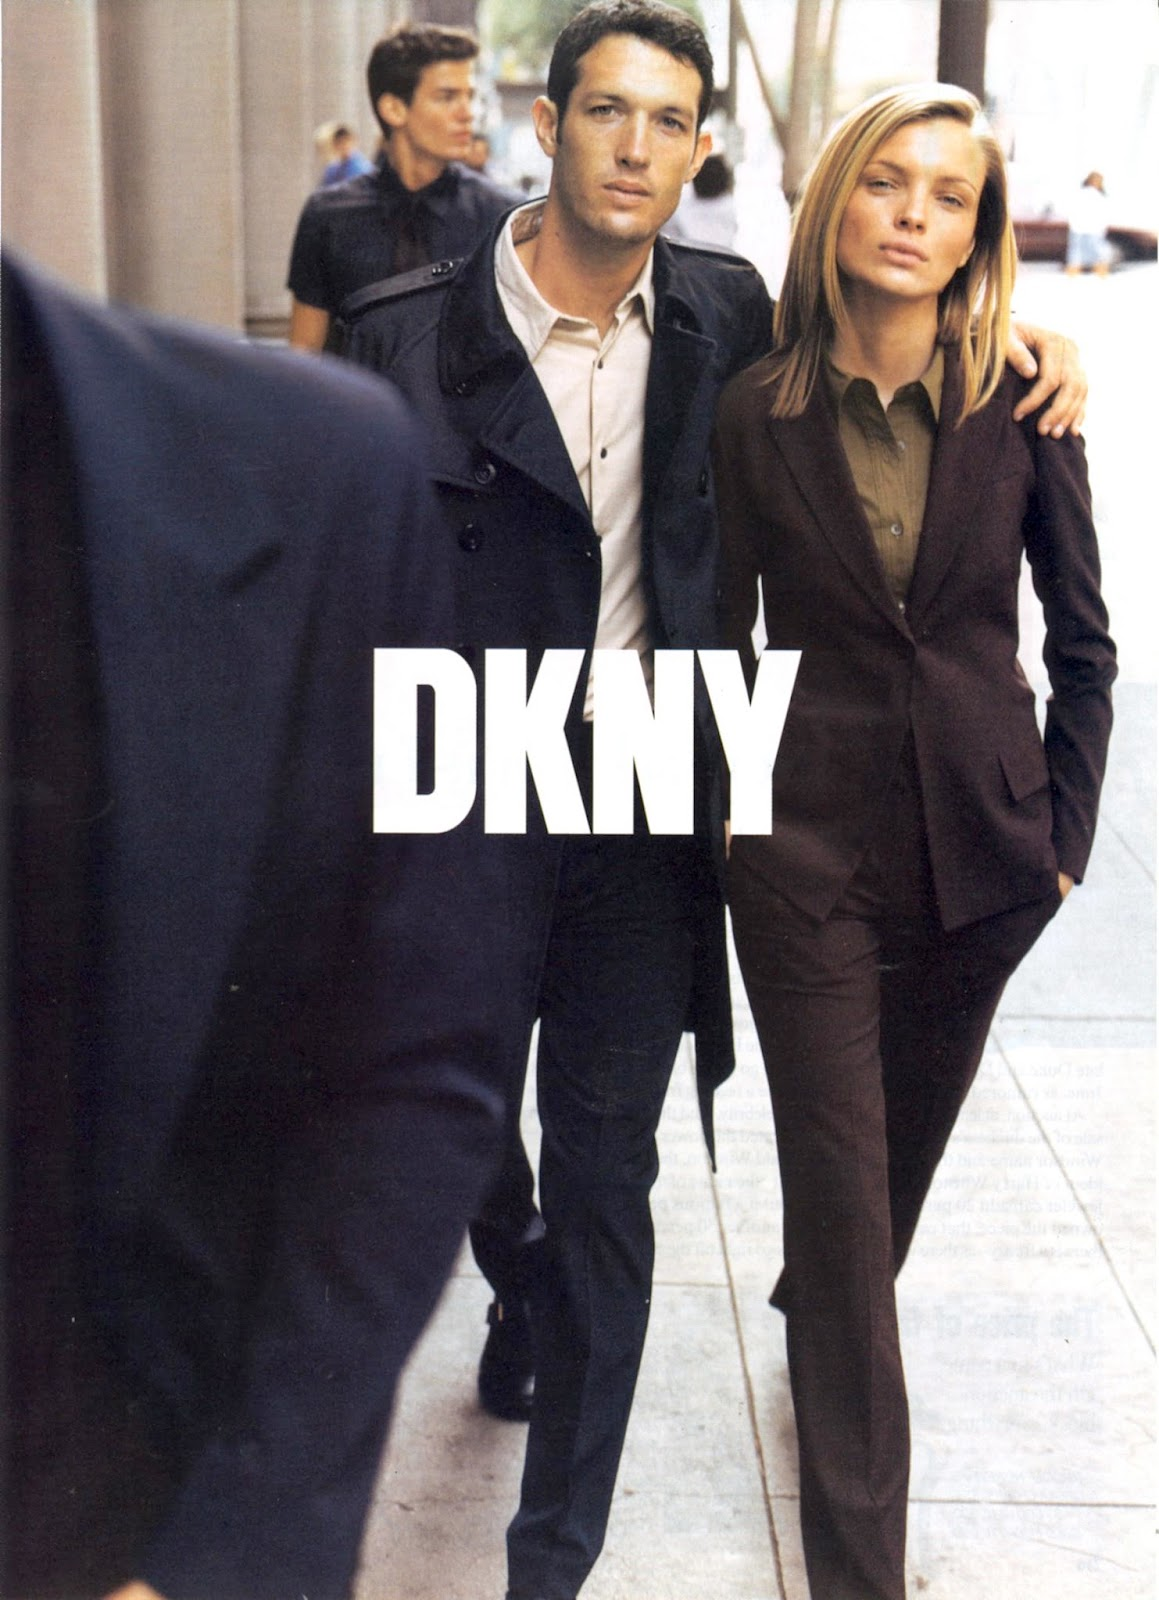 DKNY Fall/Winter 1997 campaign